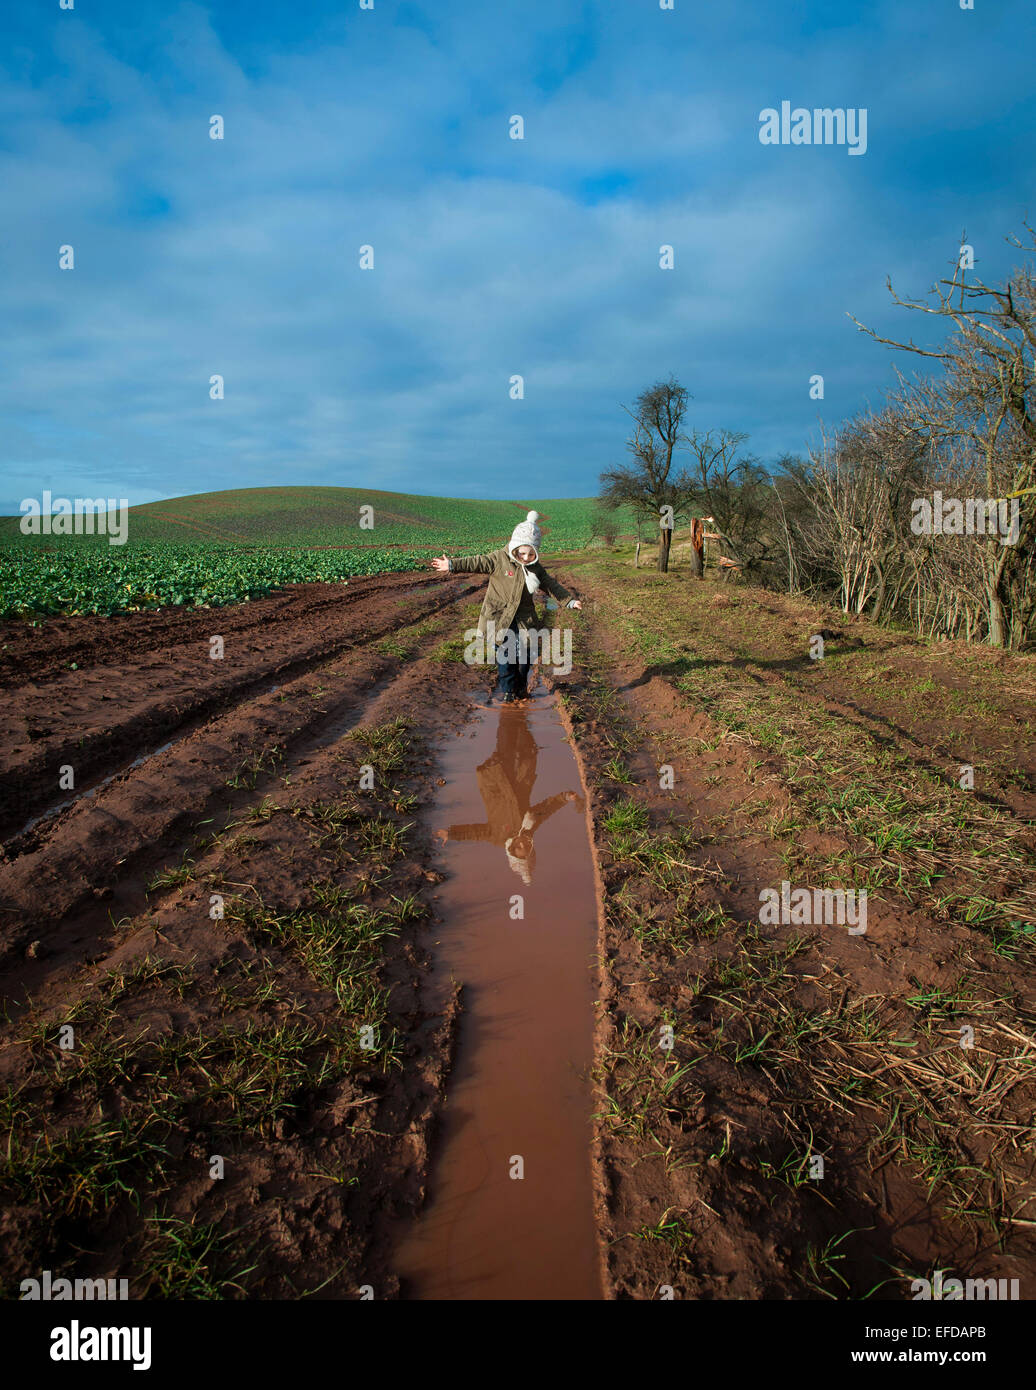 Young girl playing in puddles of water in the countryside. - Stock Image